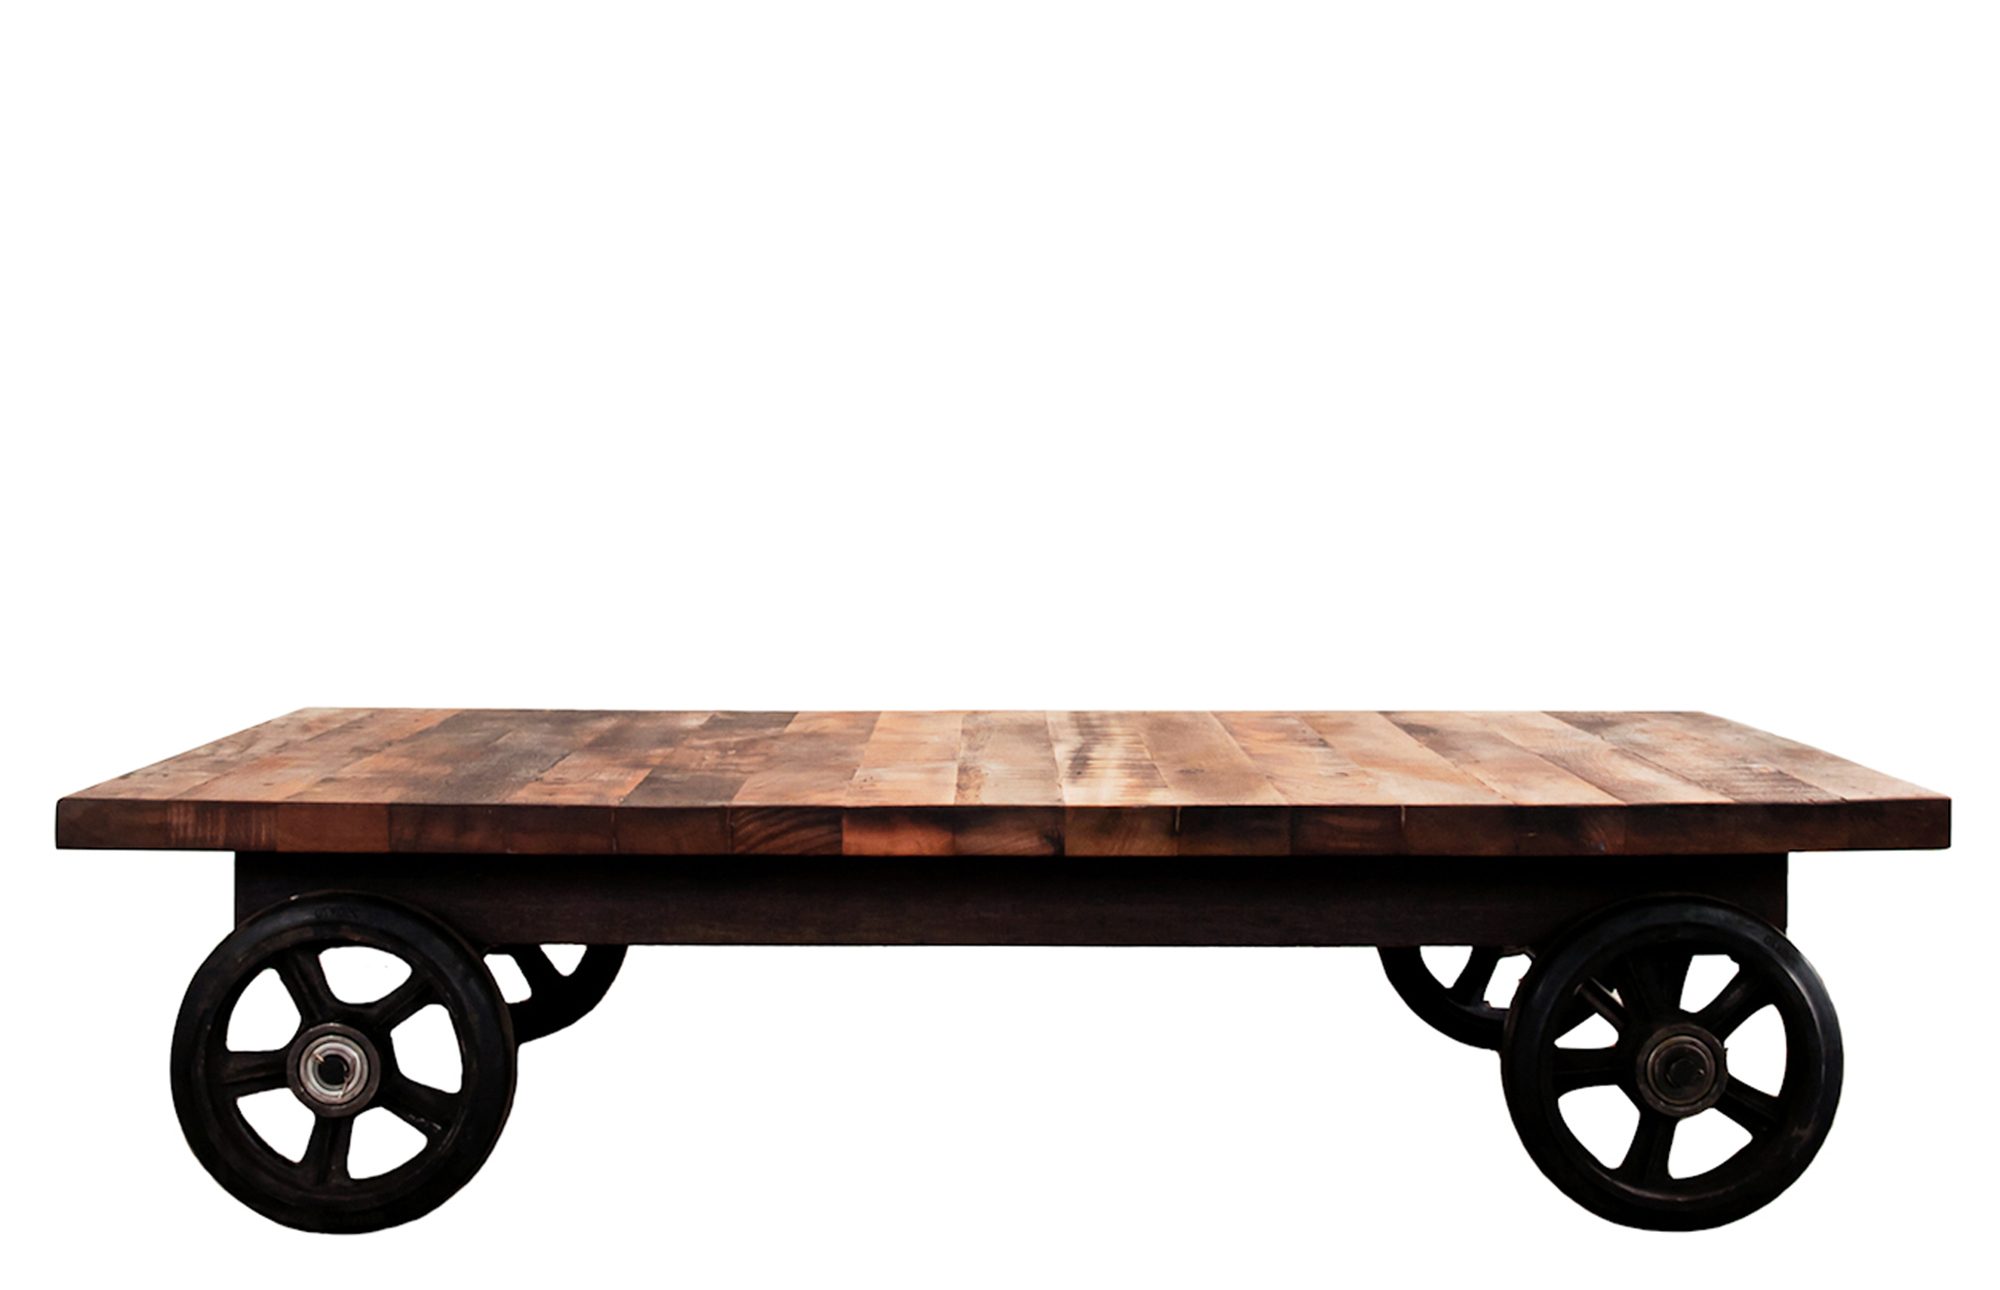 Preferred Coffee Table With Wheels – Lounge Furniture – Out & Out Original Pertaining To Iron Wood Coffee Tables With Wheels (Gallery 9 of 20)